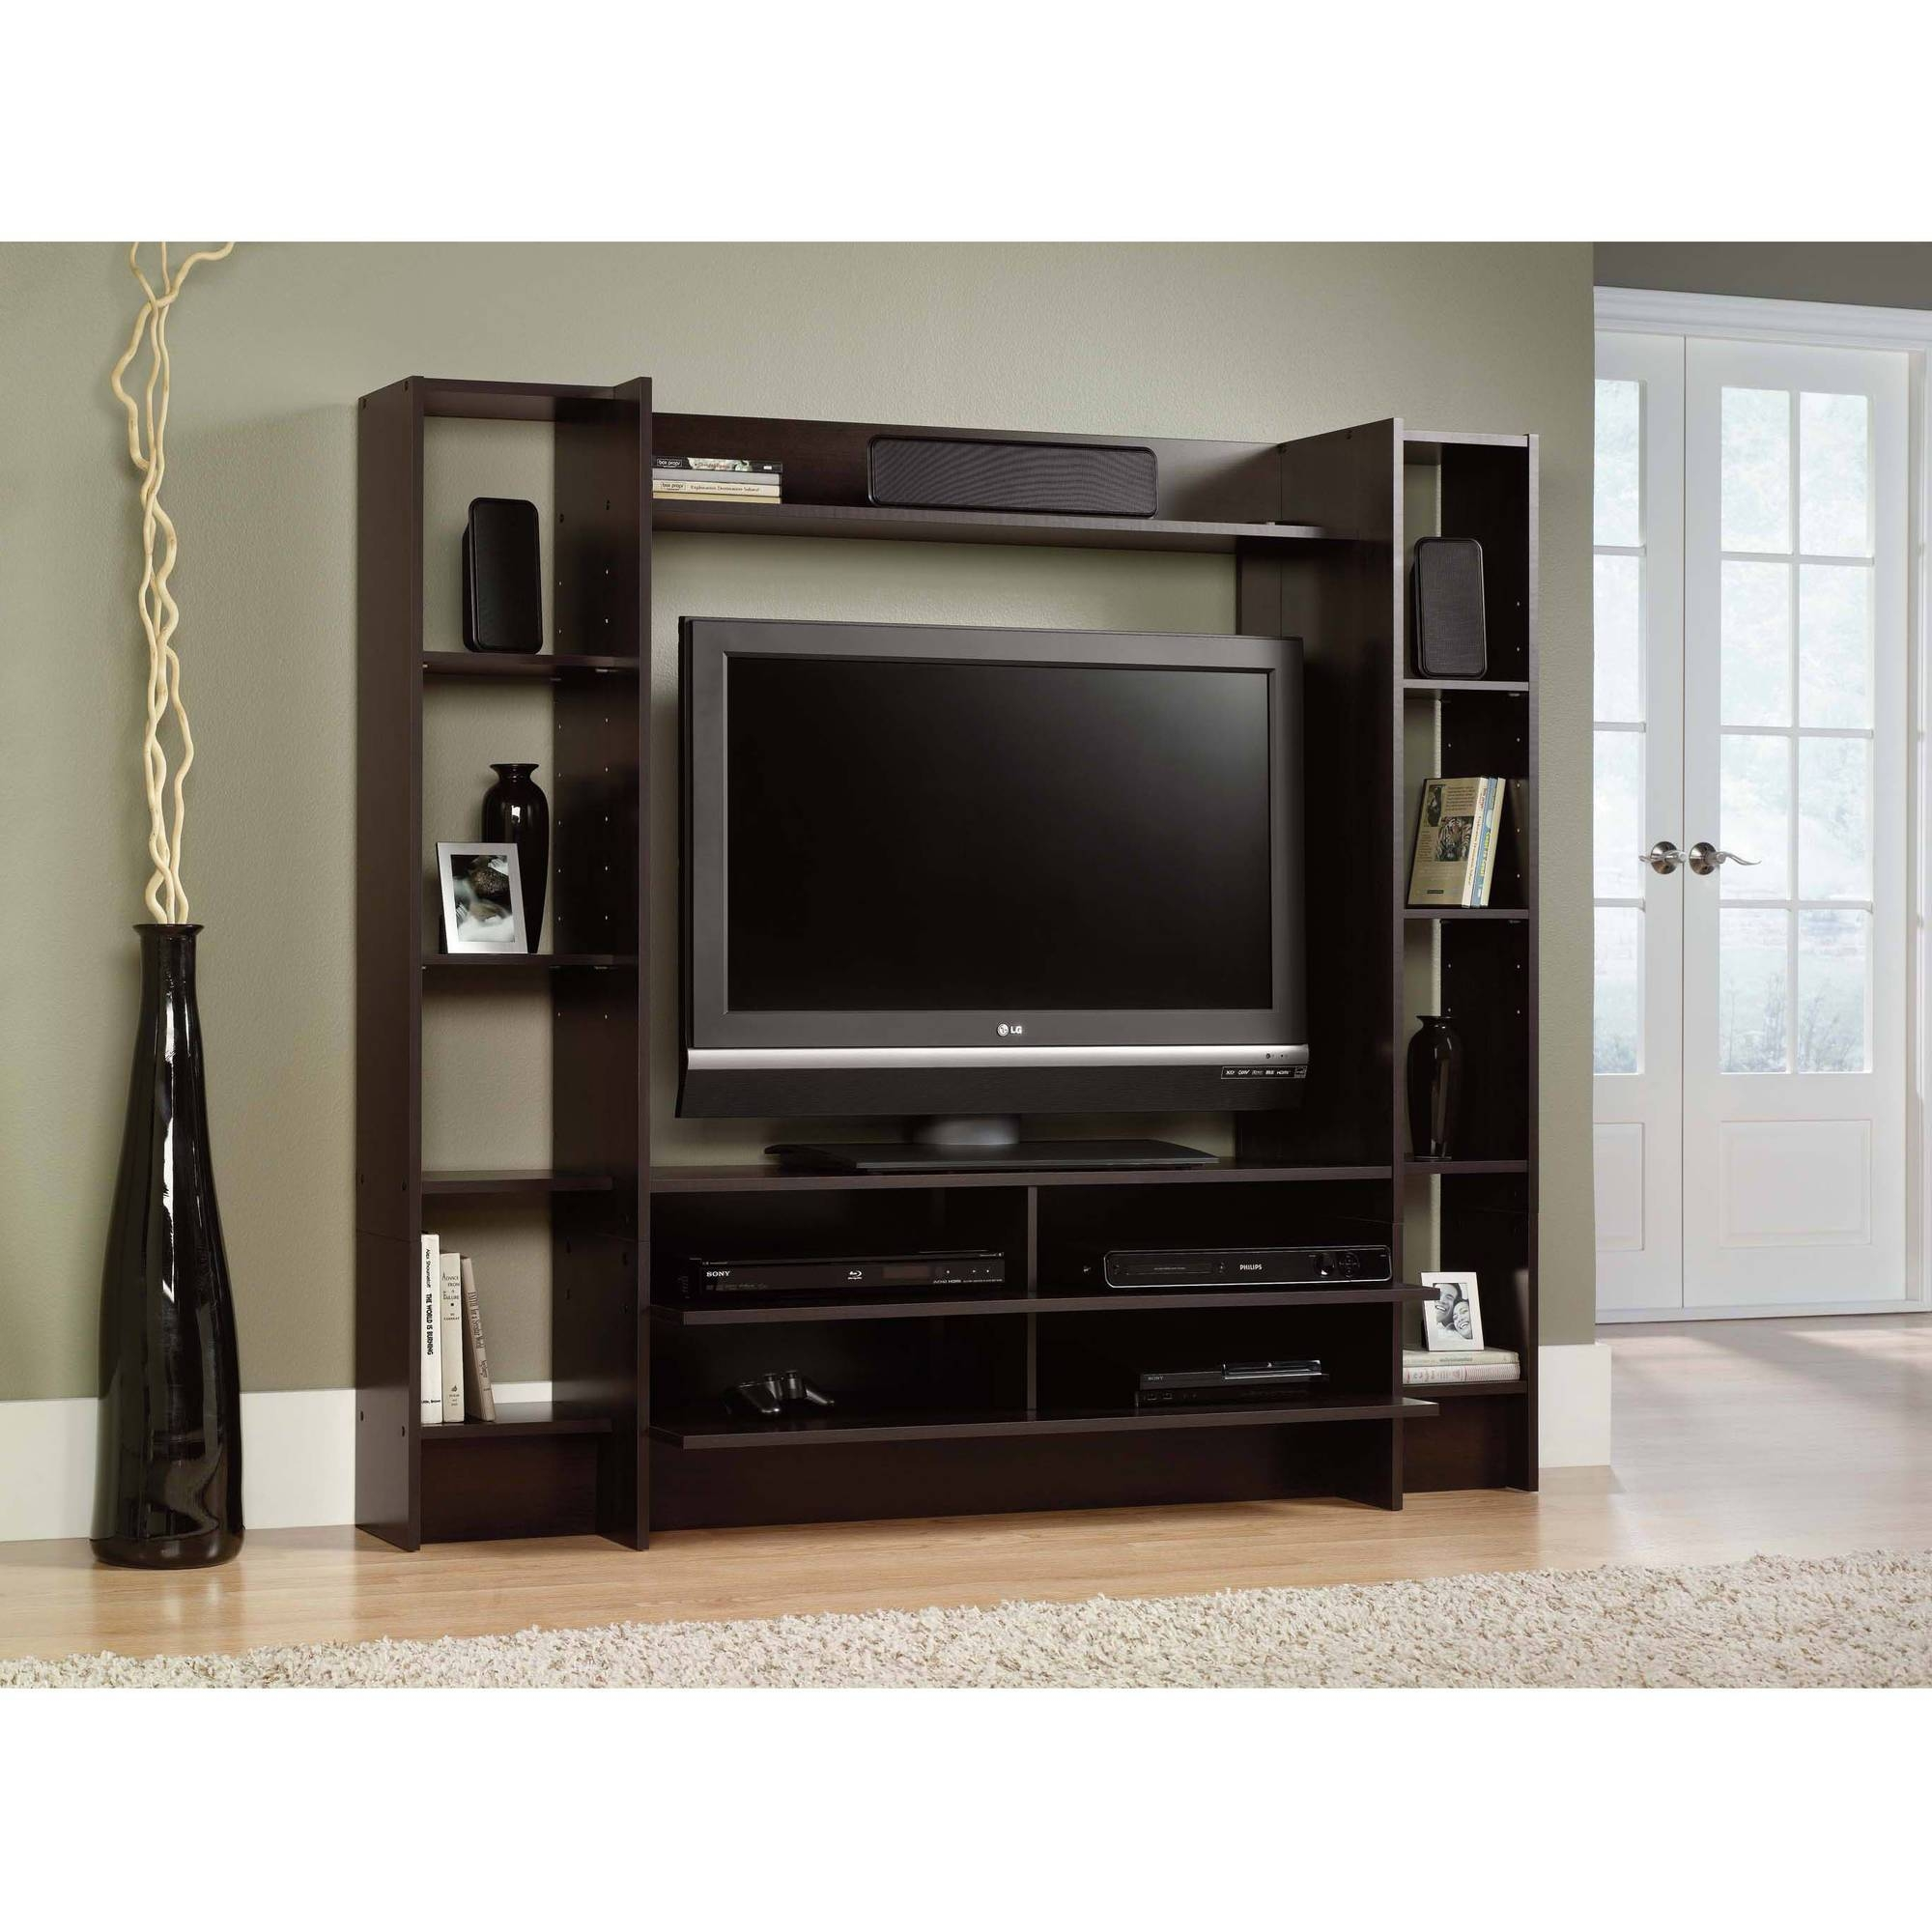 Wall Units: Awesome Tv Wall Entertainment Unit Walmart Regarding Tv Entertainment Units (View 5 of 15)